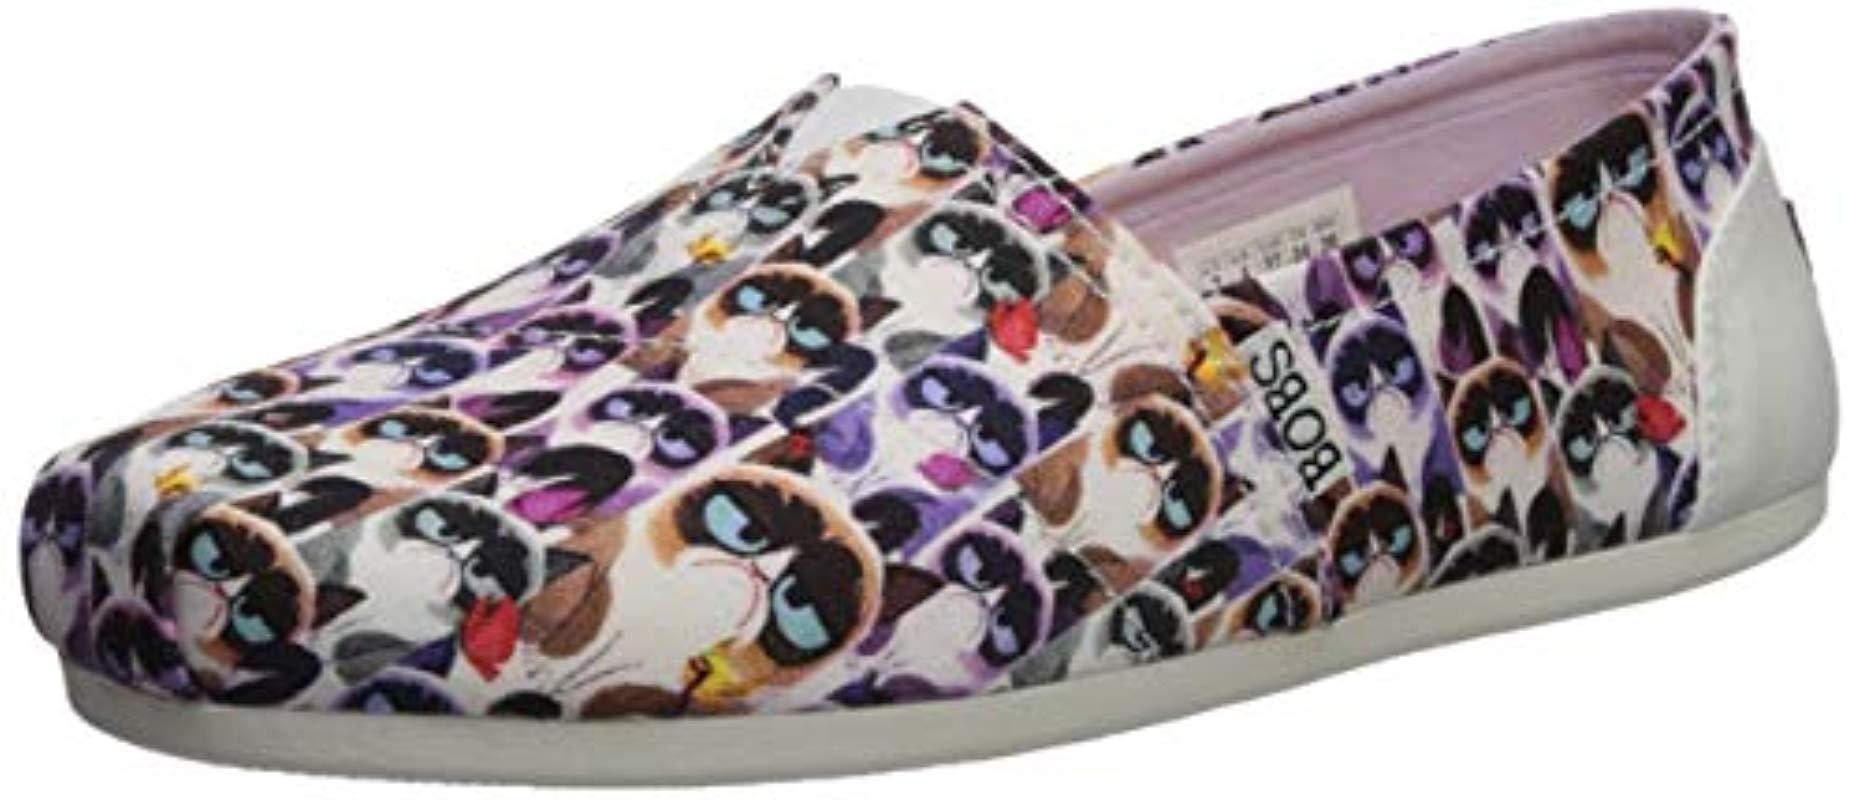 c2c81a6f86e Skechers. Women s Bobs Bobs Plush-grumpy Cat Slip On Ballet Flat